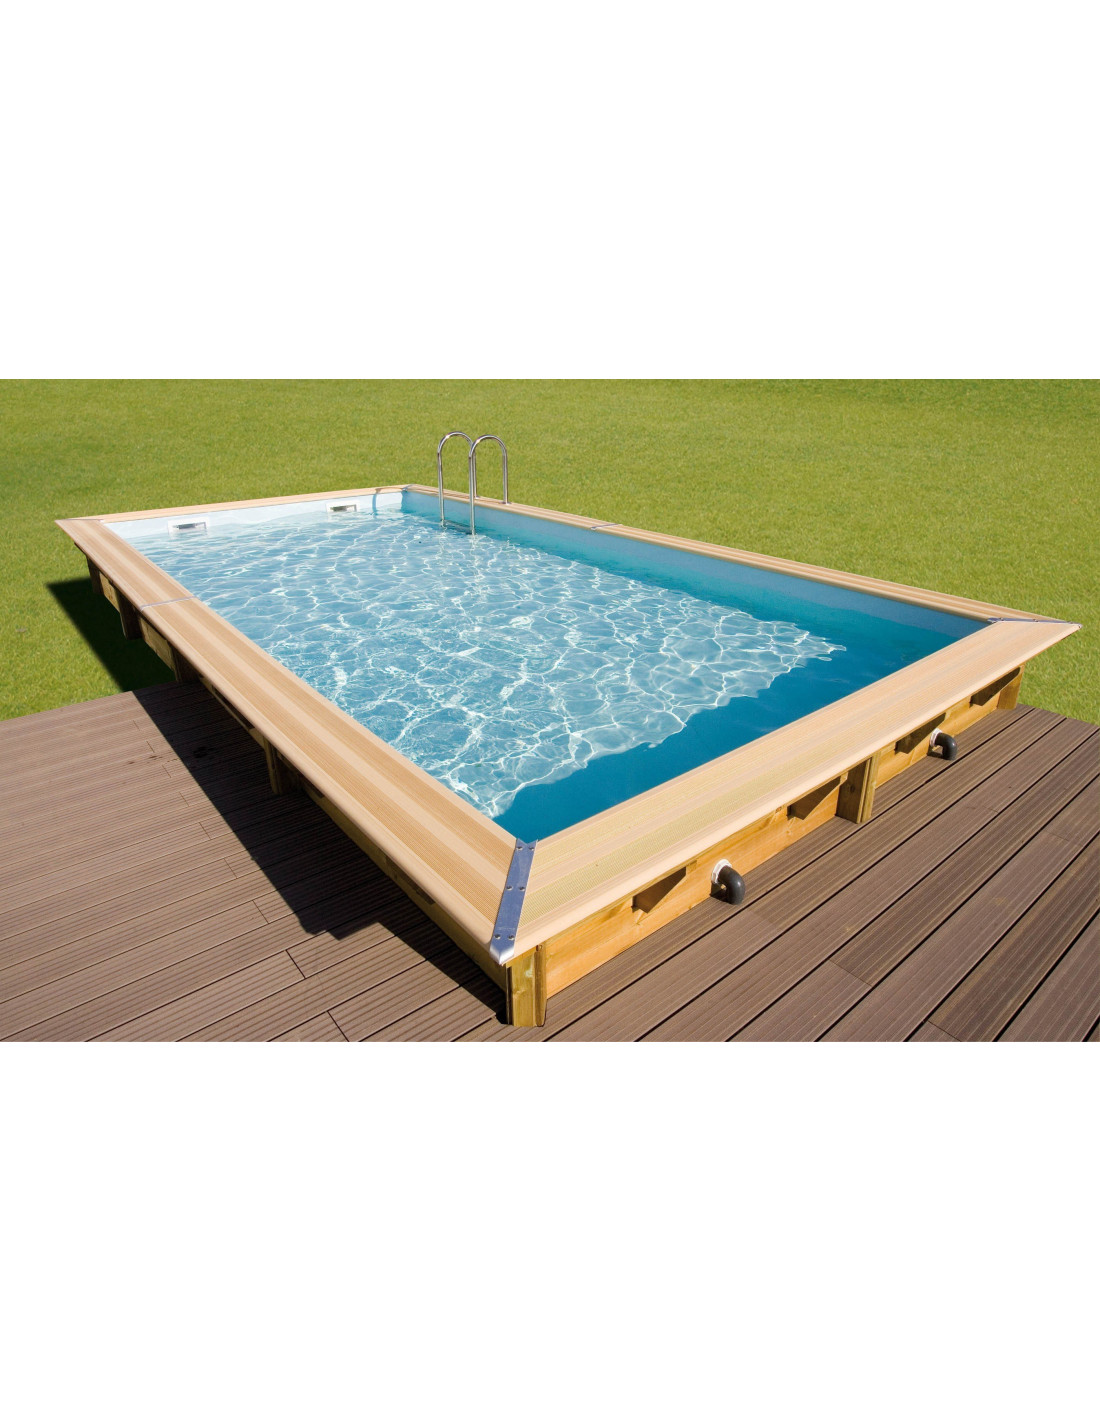 Piscine hors sol bois lin a 650 x 350 x 140 cm liner for Piscine demontable rectangulaire